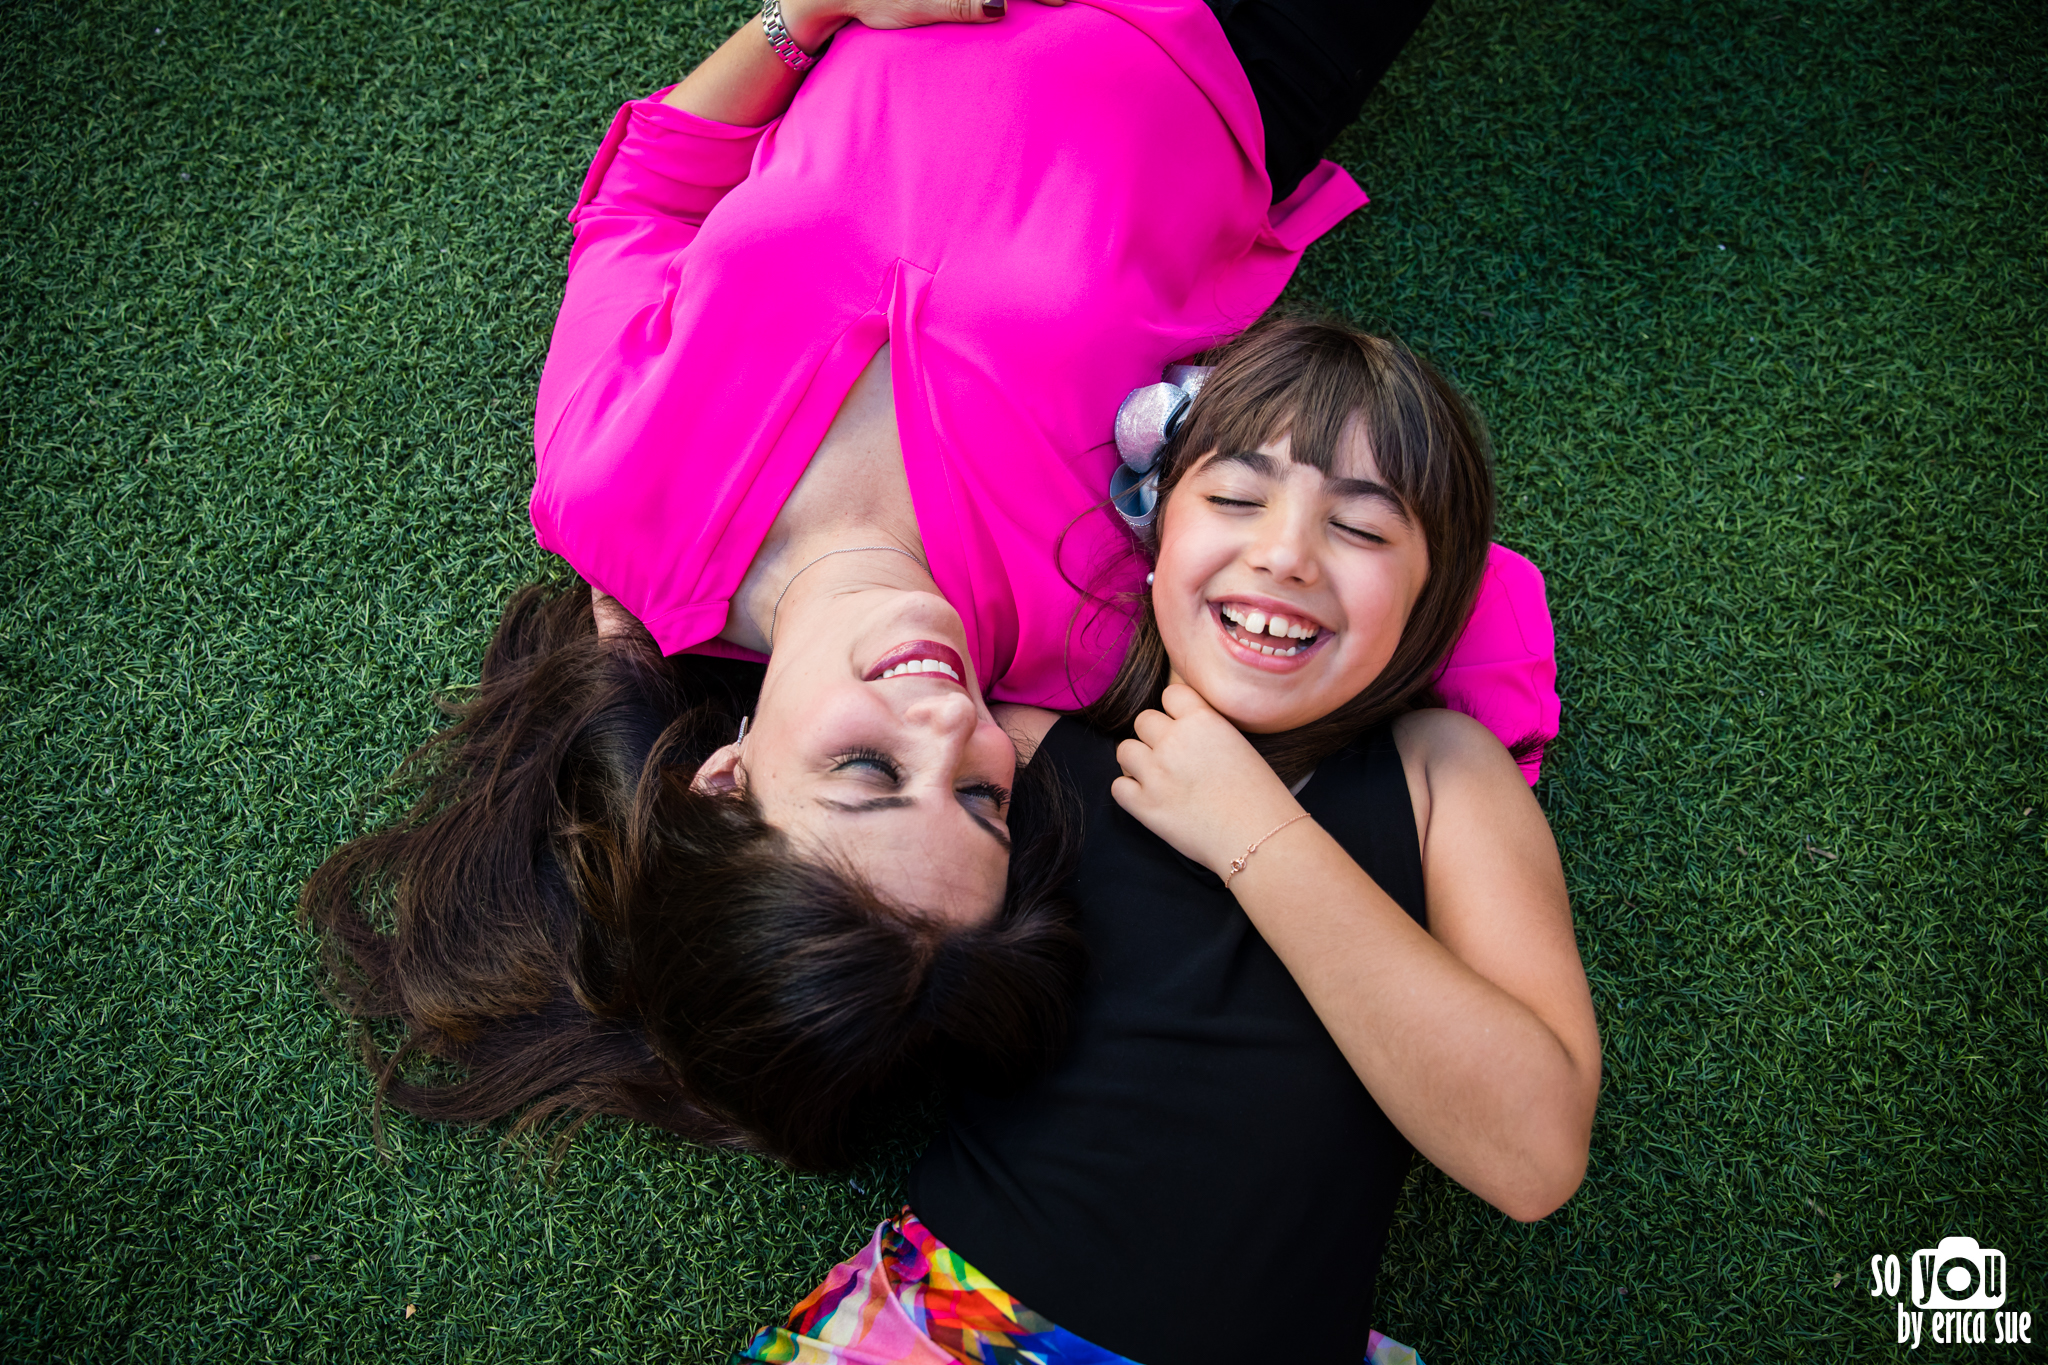 so-you-by-erica-sue-family-photographer-miami-fl-wynwood-mother-daughter-3309.jpg